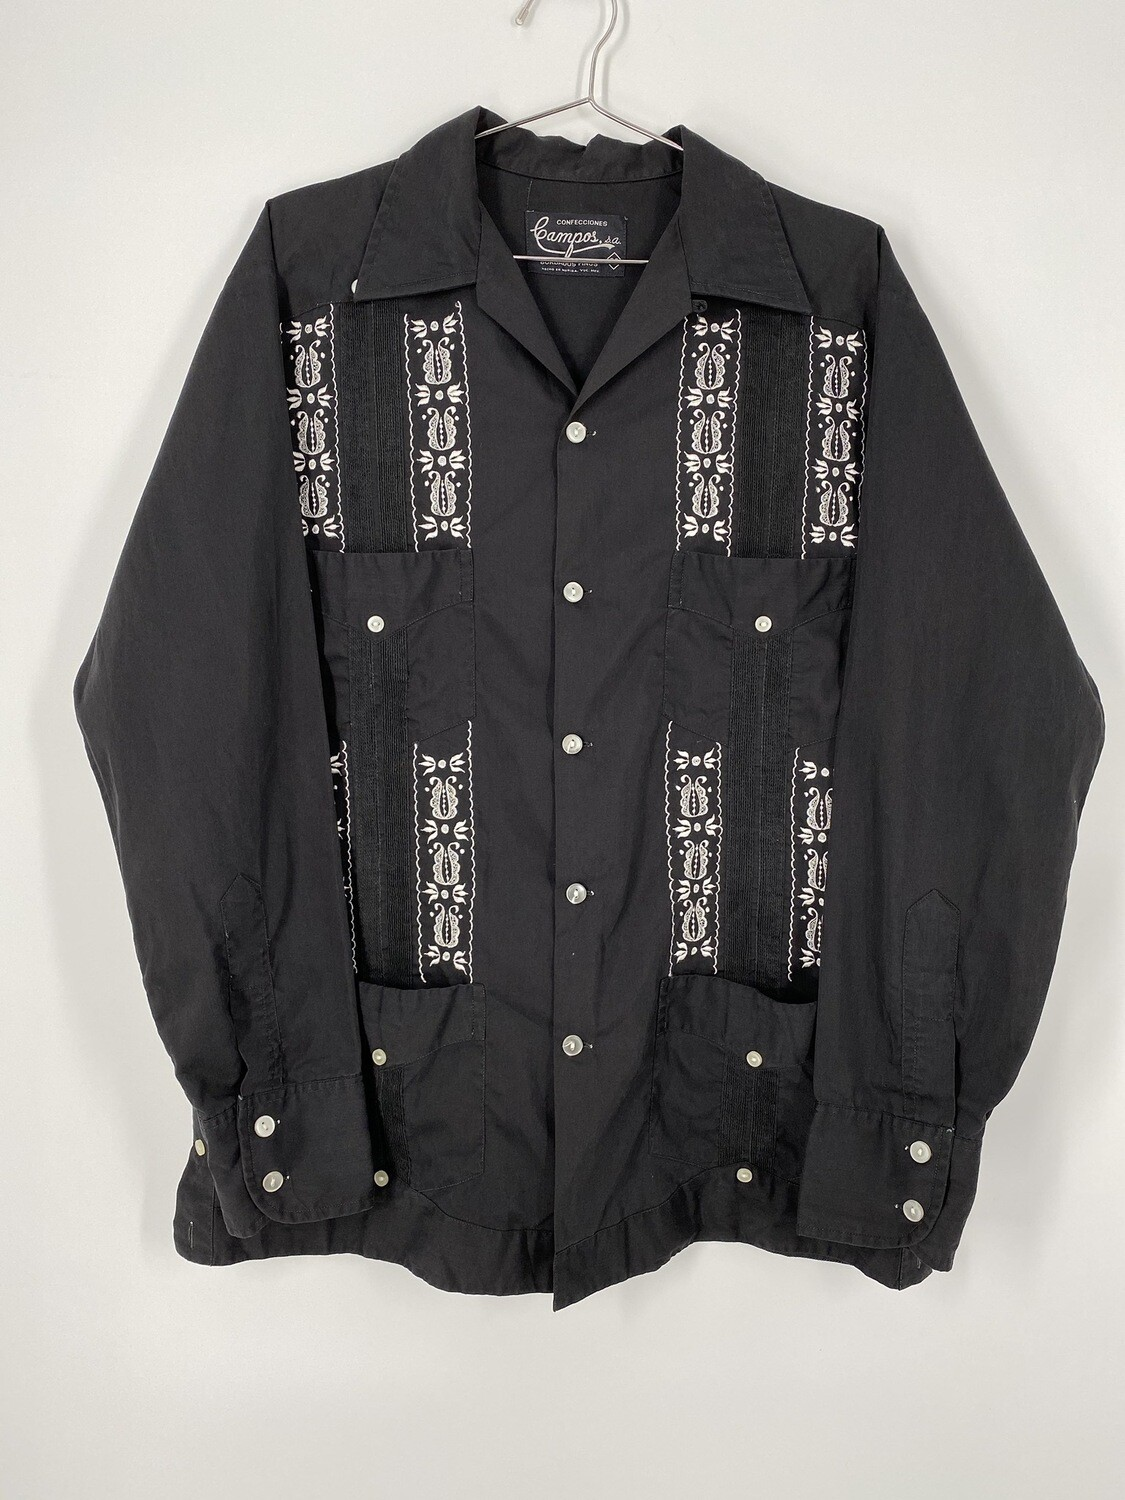 Campos Embroidered Black And White Button Up Size M